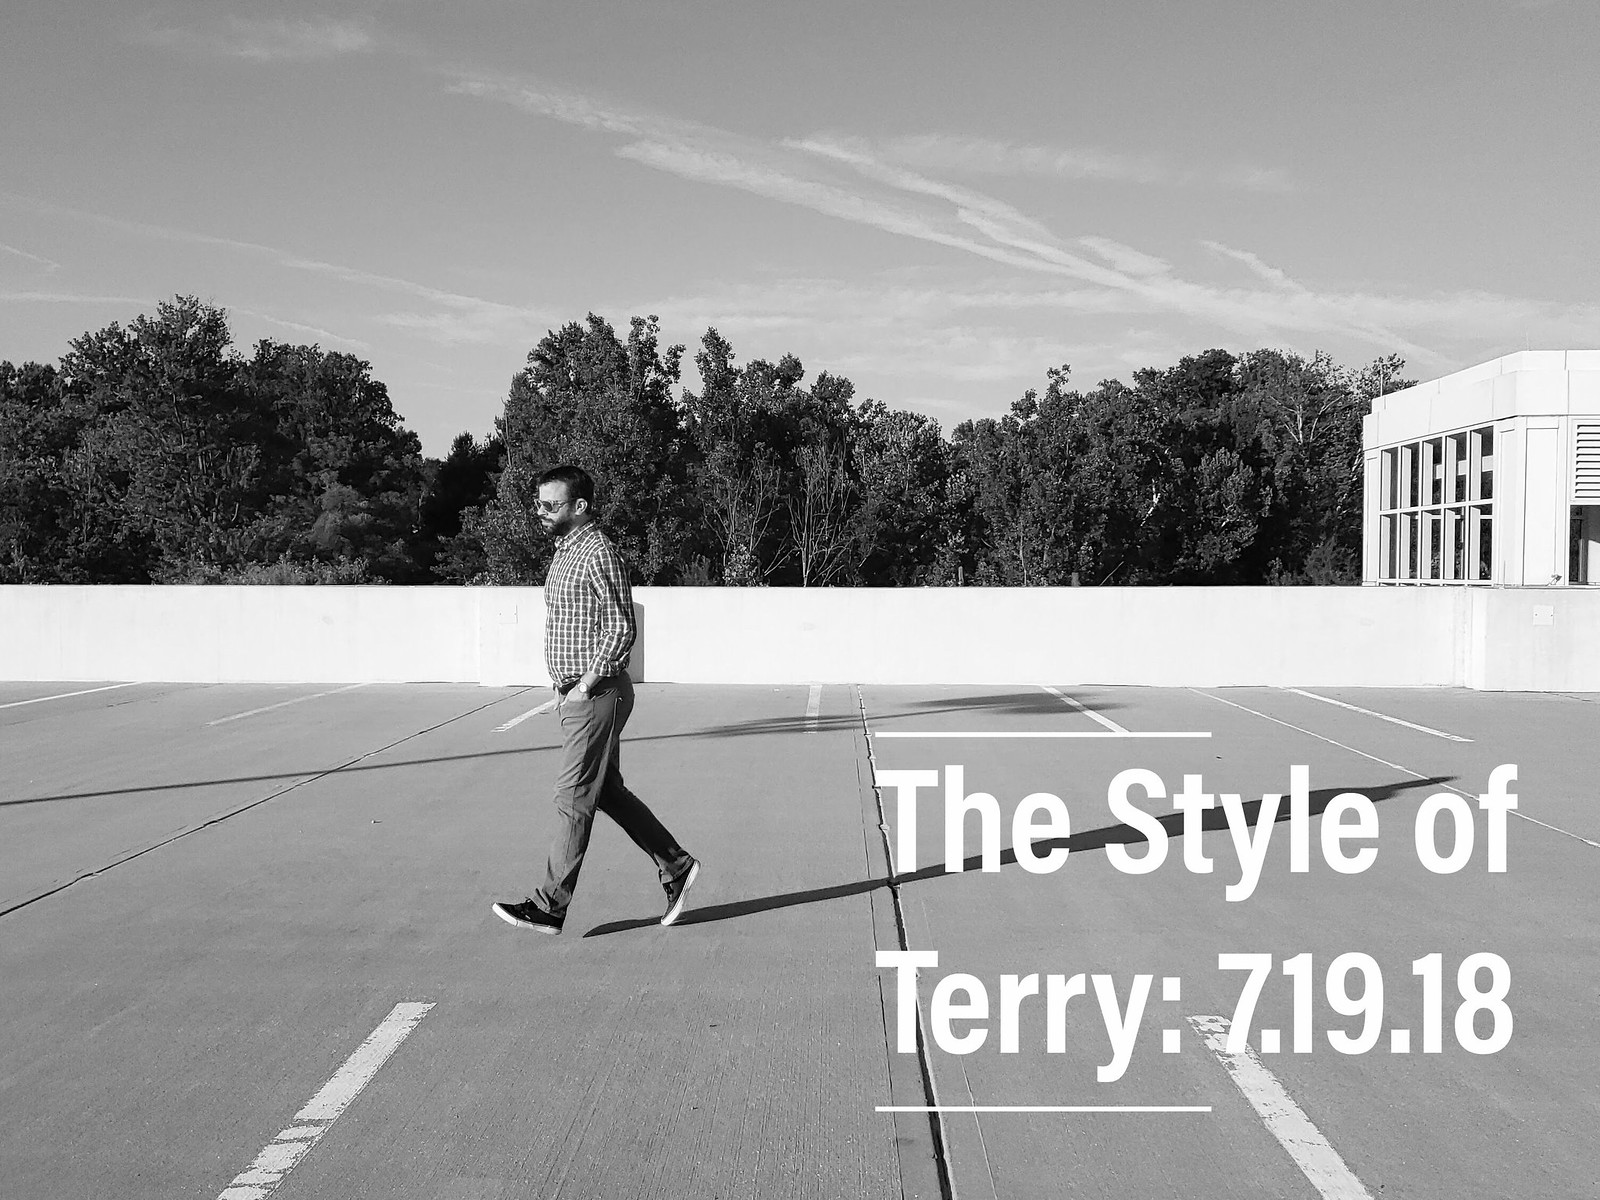 The Style of Terry: 7.19.18